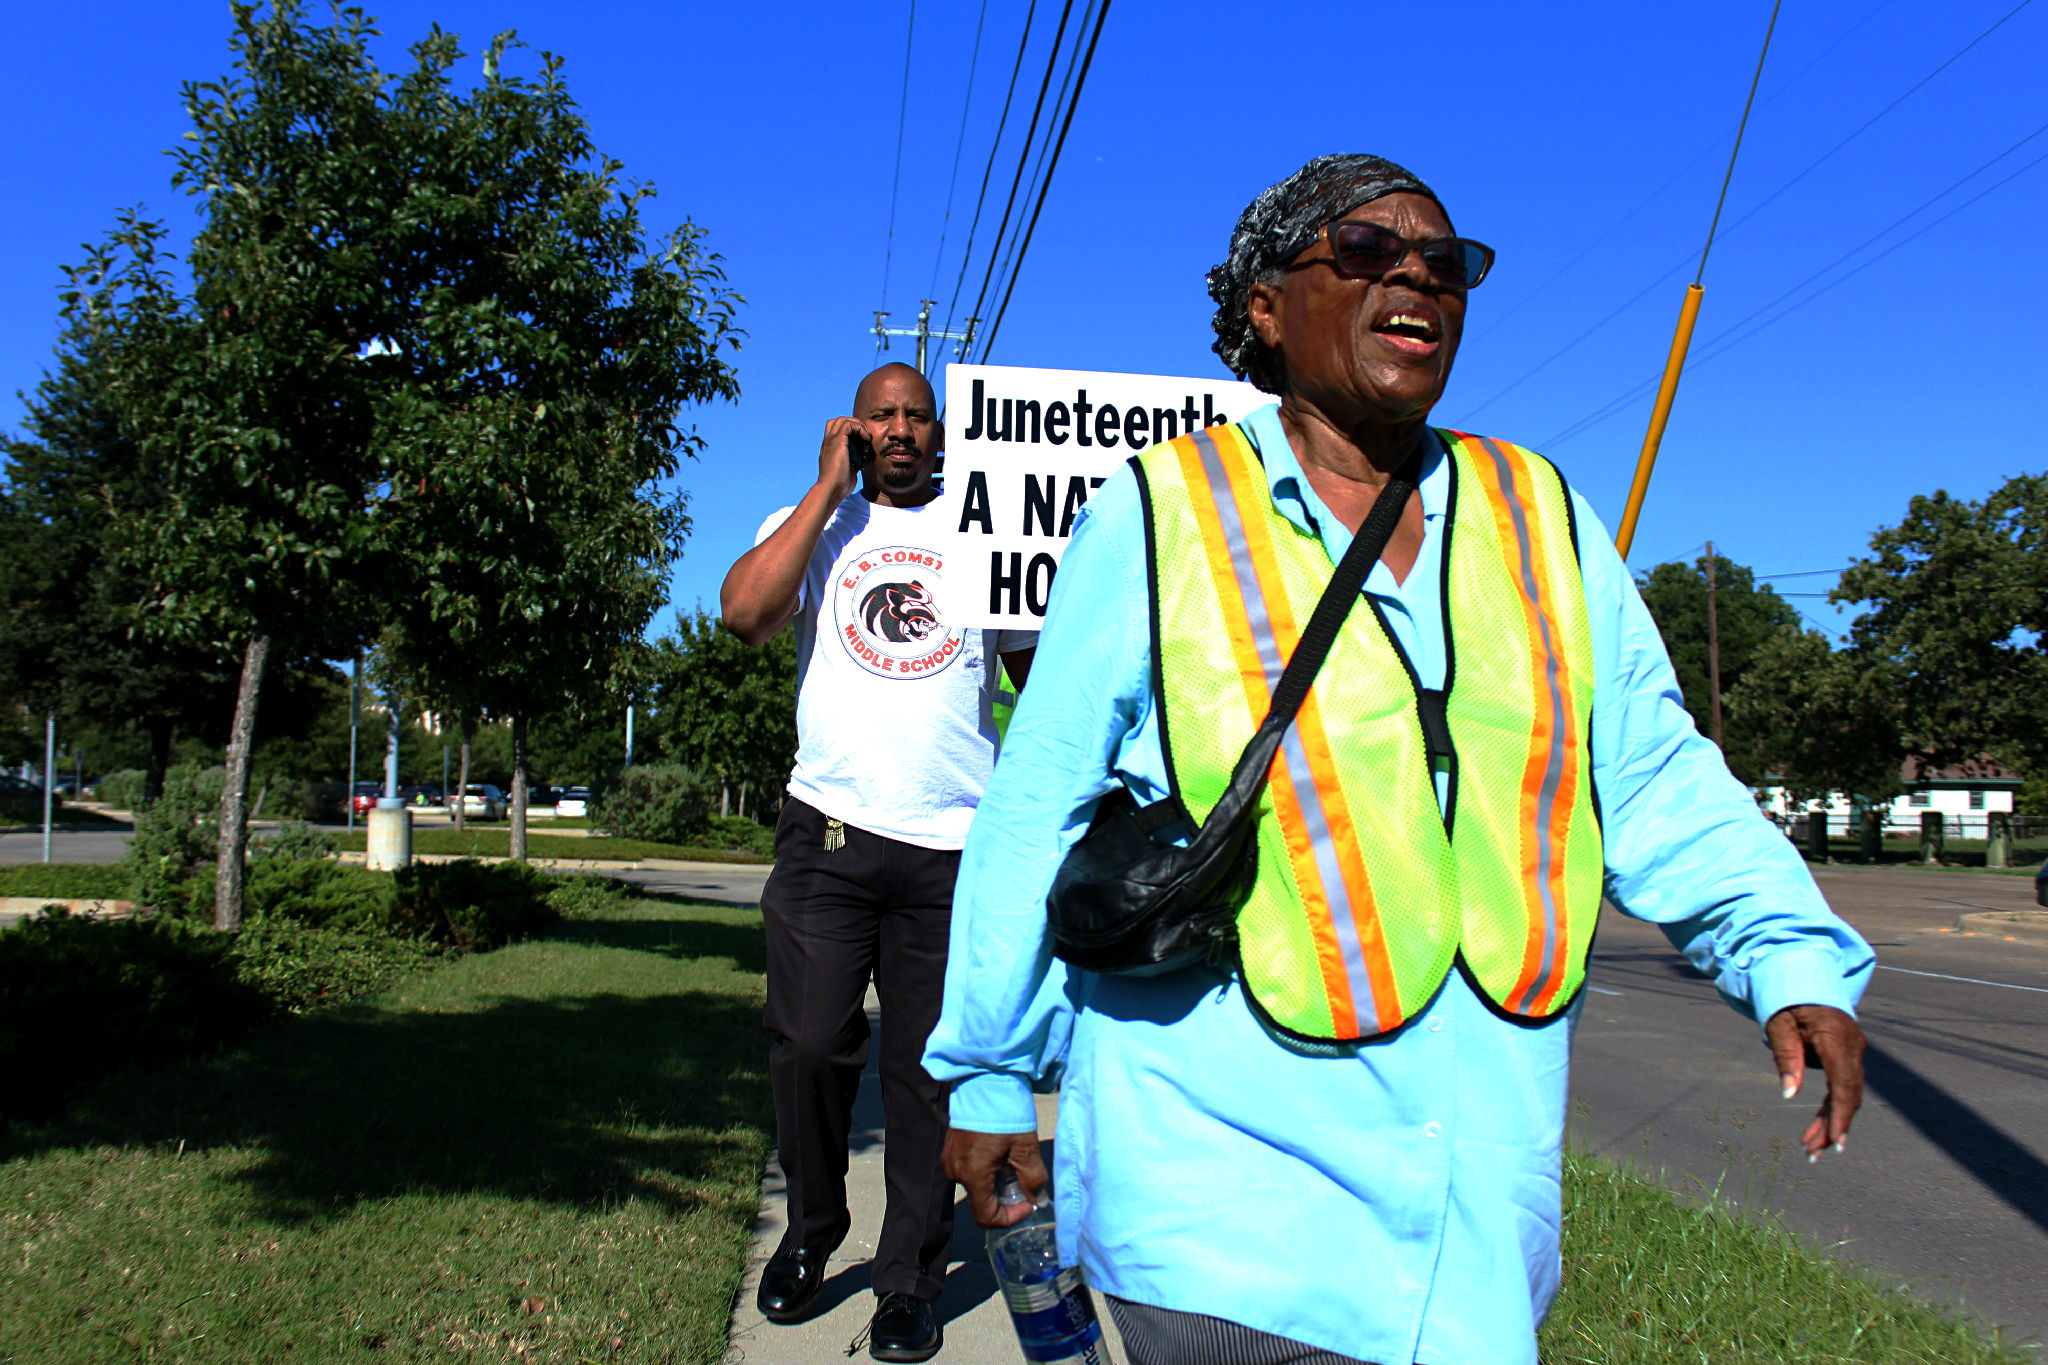 Opal Lee plans to turn 90 on her walk to the nation's capital. Behind her is Willie Johnson, principal of E.B. Comstock Middle School in Dallas, who joined her for a leg of the walk.